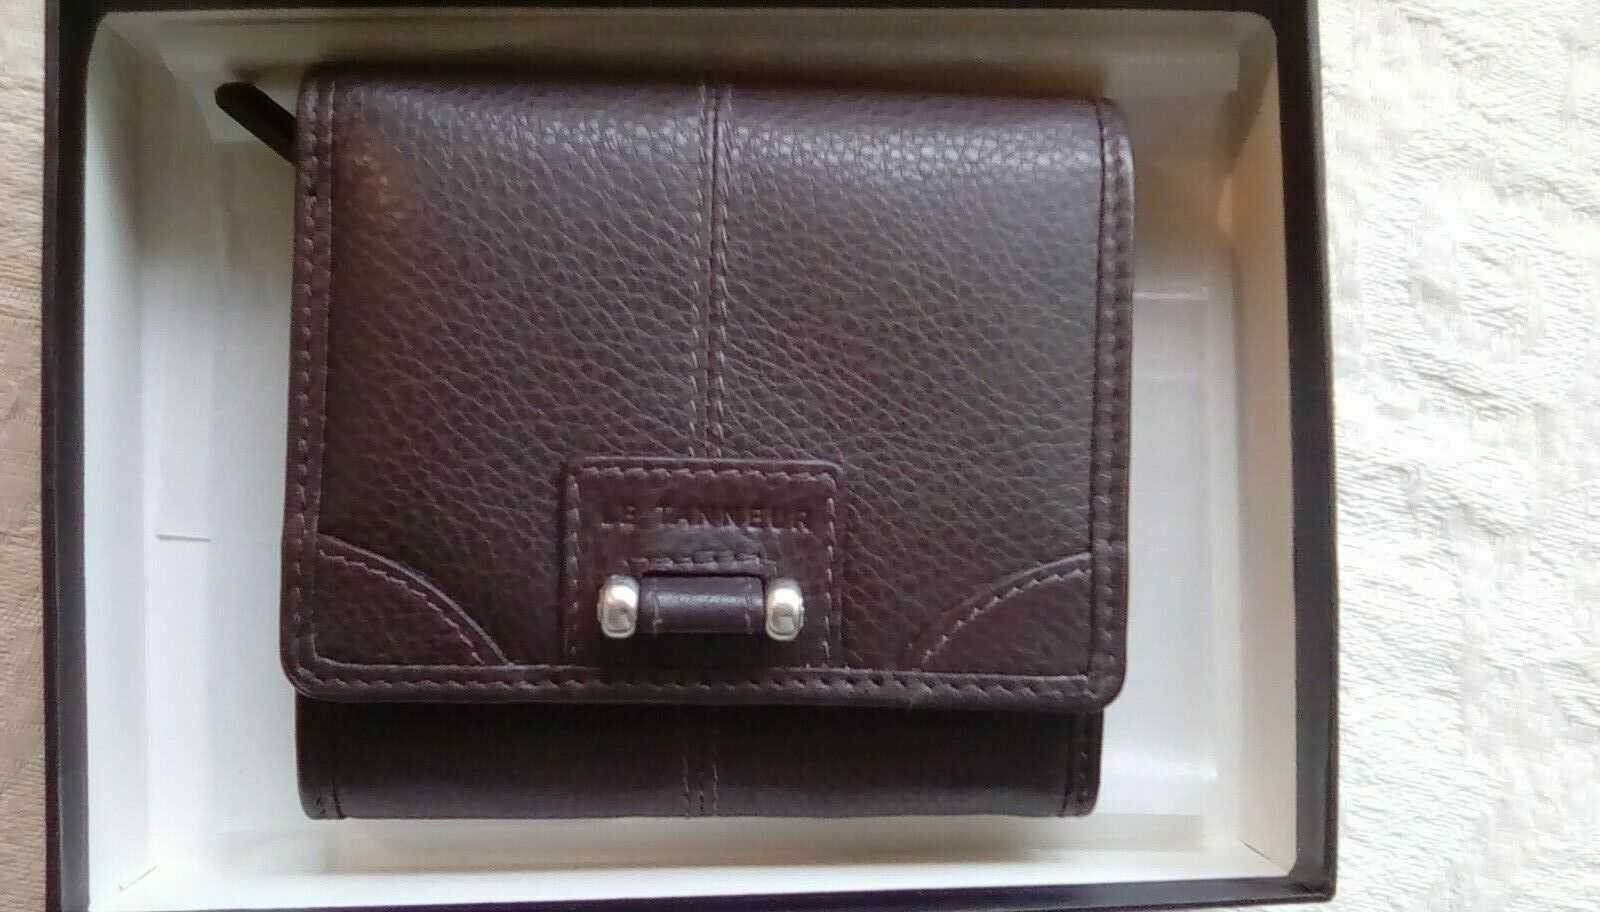 Le Tanneur Small Textured Brown Leather Wallet New 4 by 4 Inches Silver Trim NIB